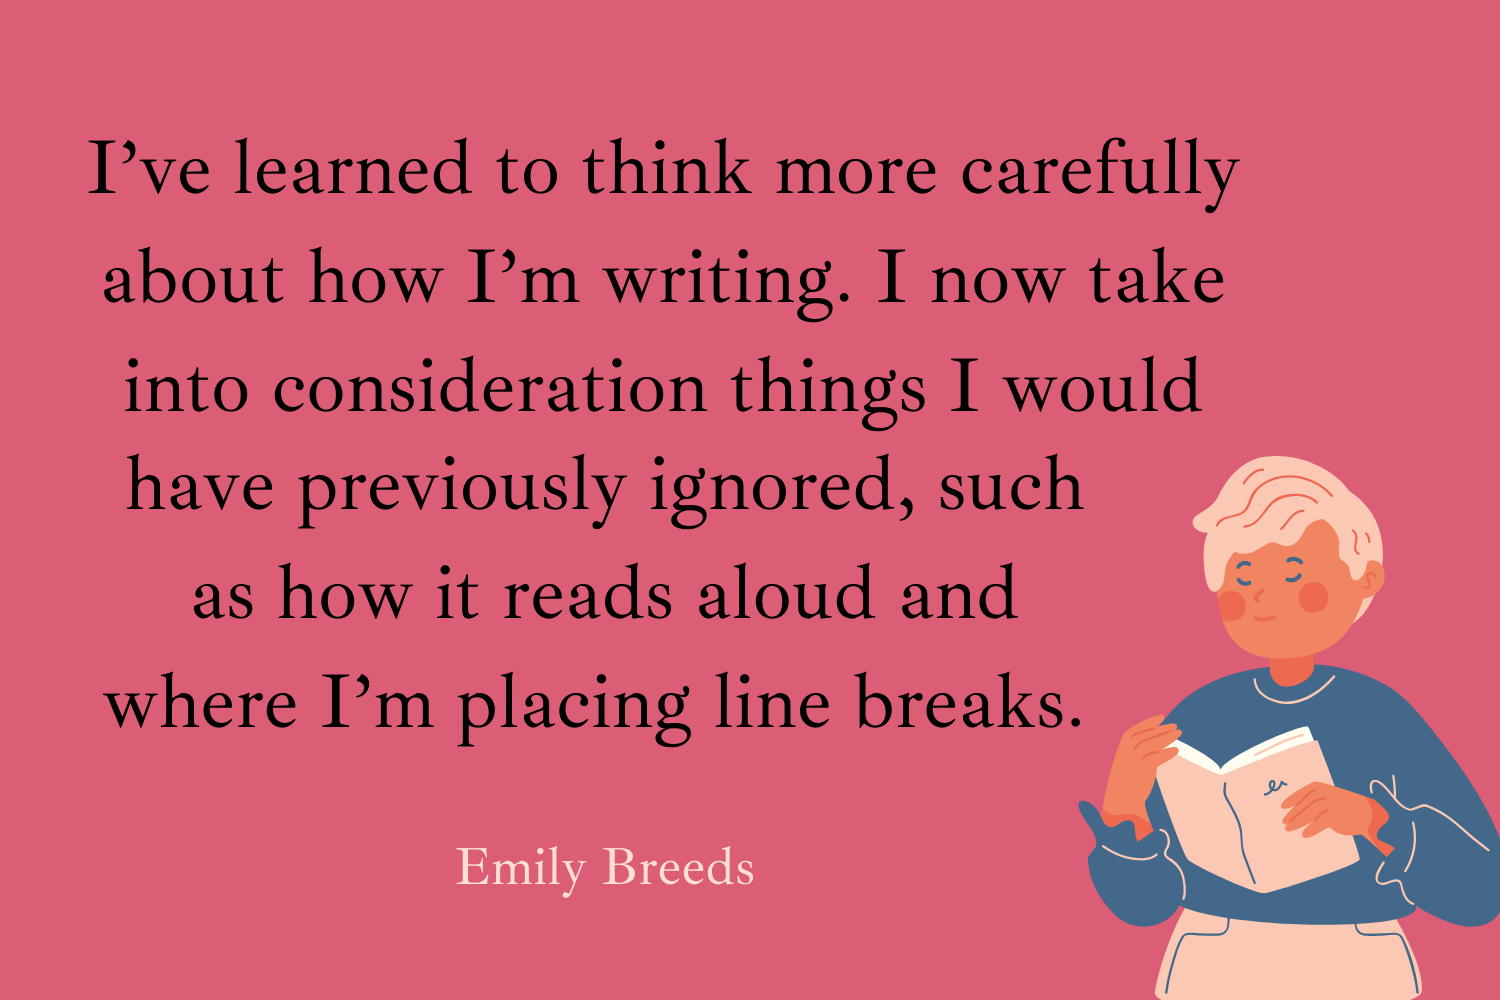 I've also learned to think more carefully about how I'm writing. I now take into consideration things I would have previously ignored, such as how it reads aloud and where I'm placing line breaks - Emily Breeds